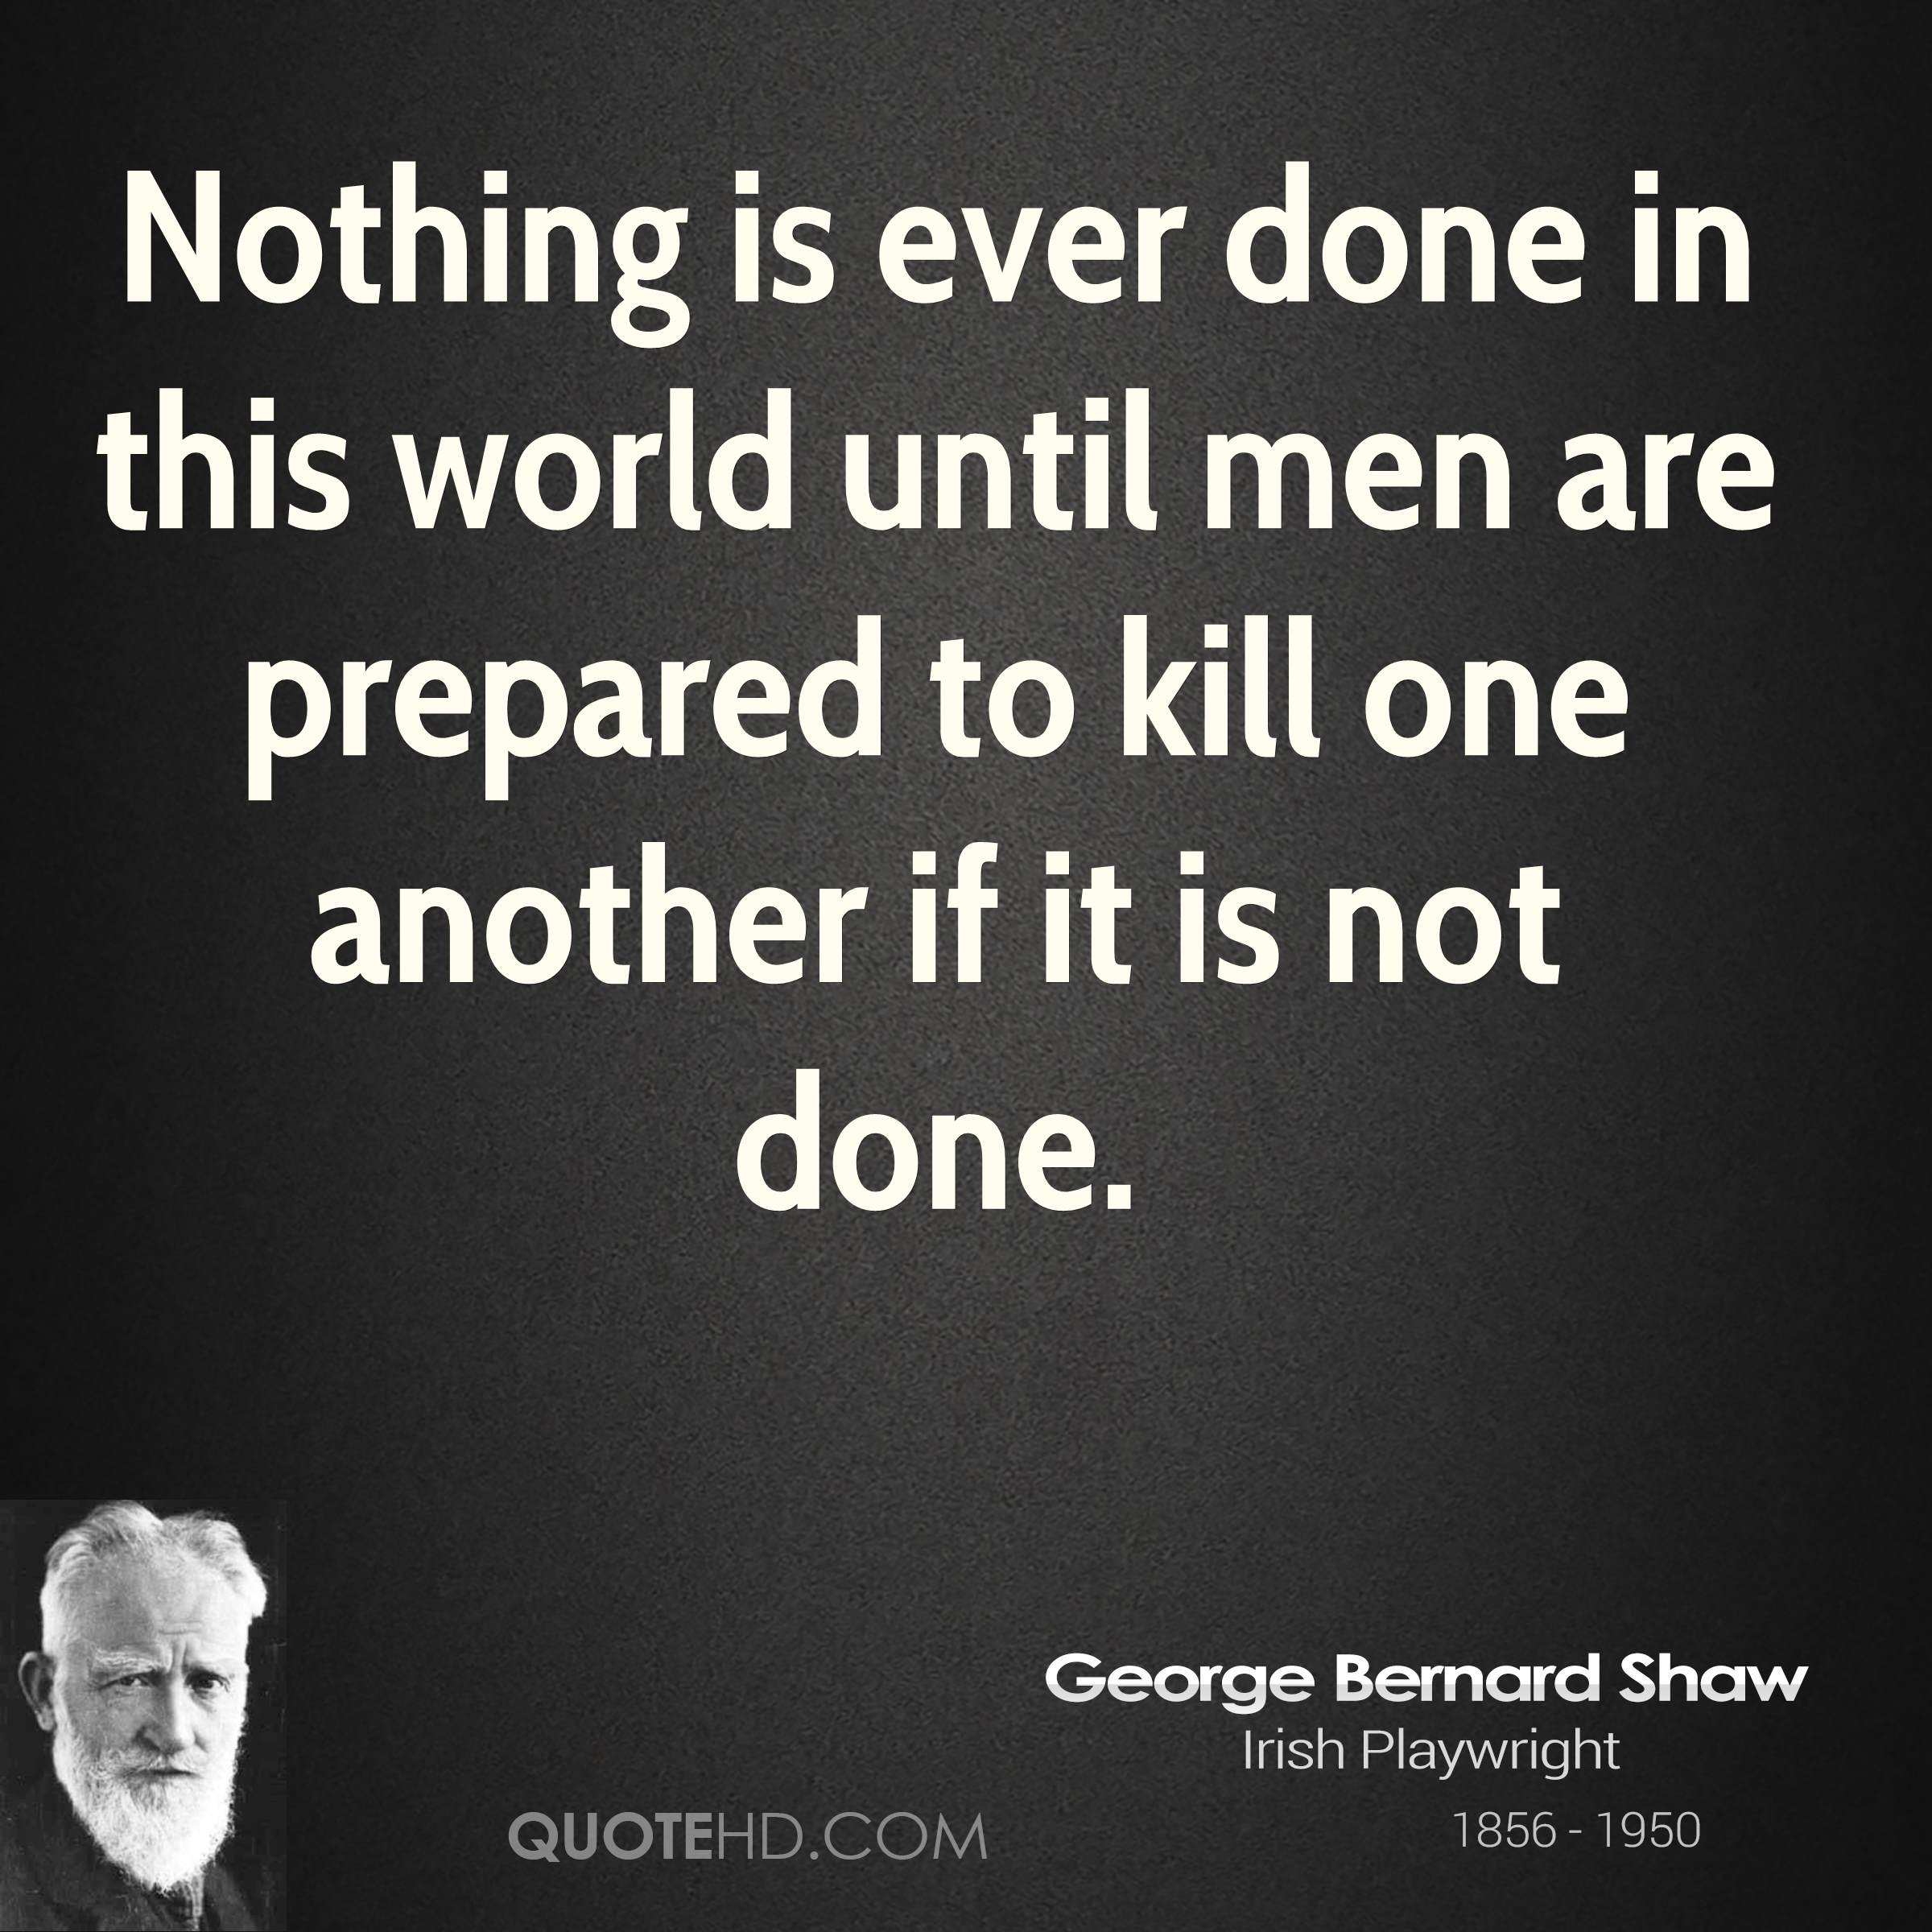 Nothing is ever done in this world until men are prepared to kill one another if it is not done.